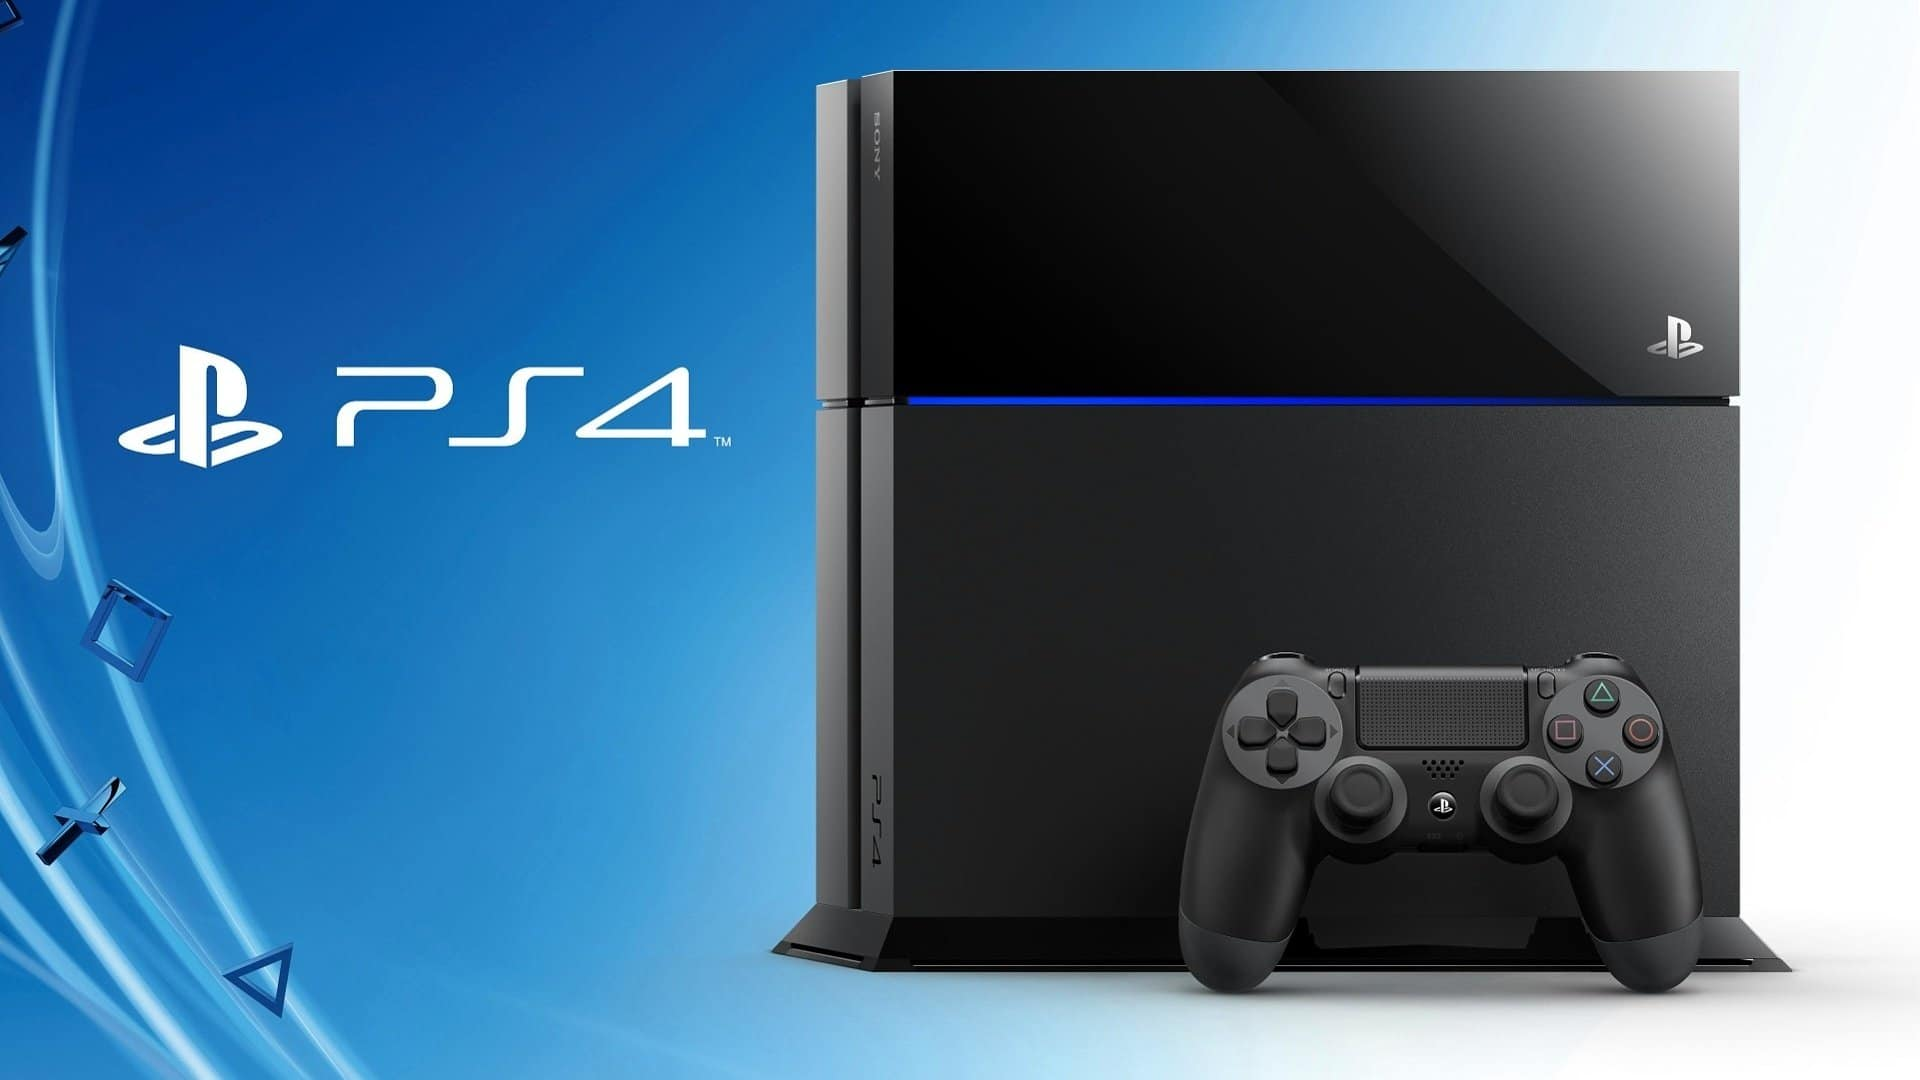 Free-to-play games for the PS4 - BuffNerfRepeat